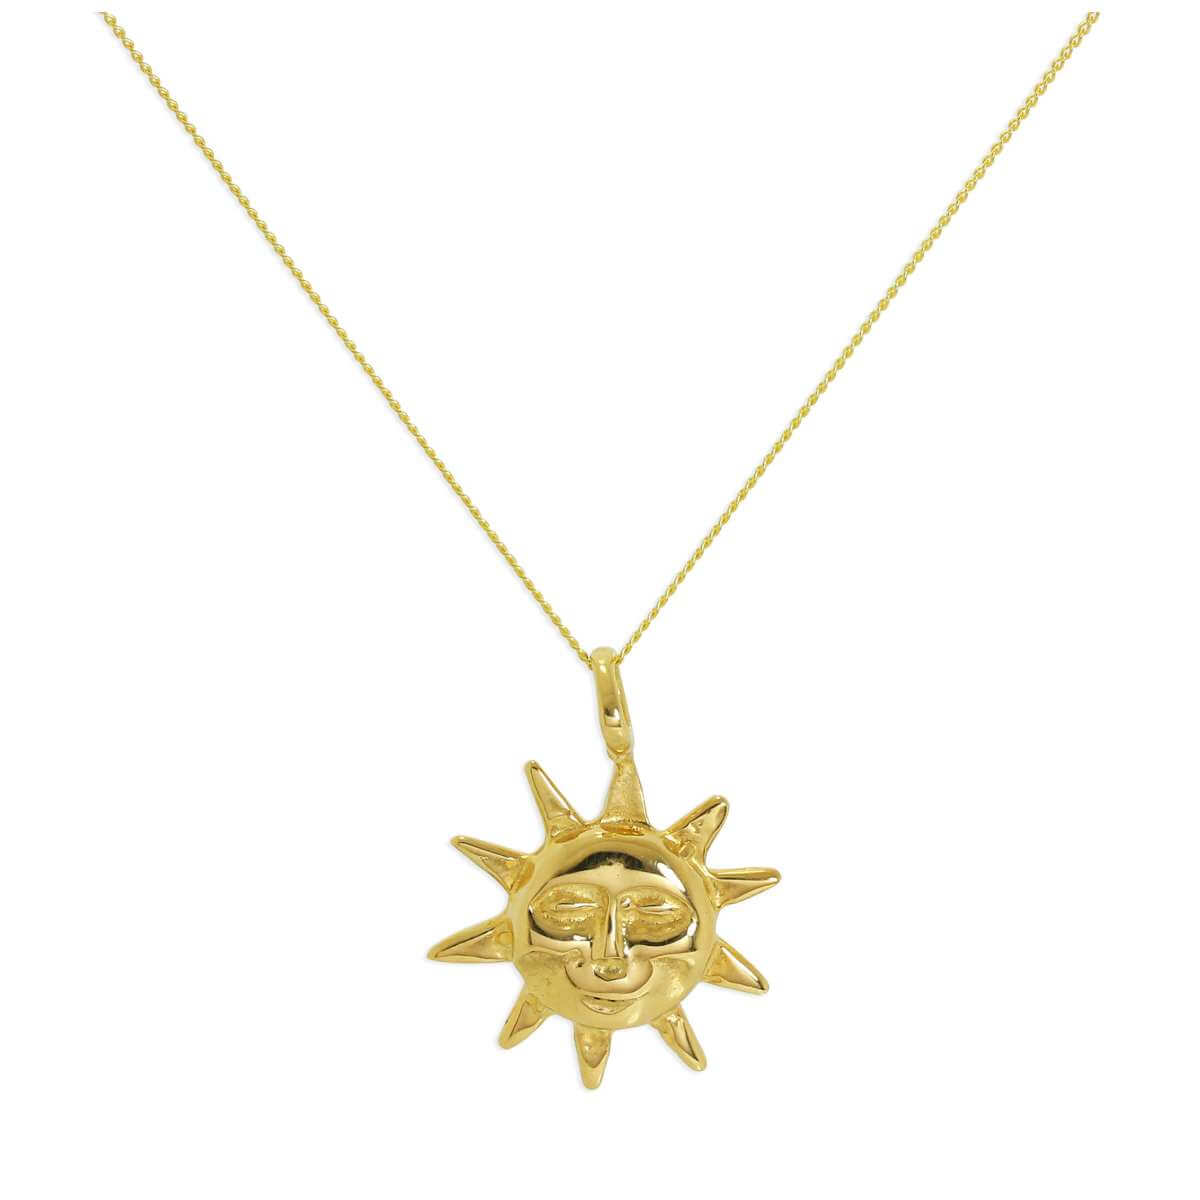 9ct Gold Sun Necklace - 18 Inch Chain